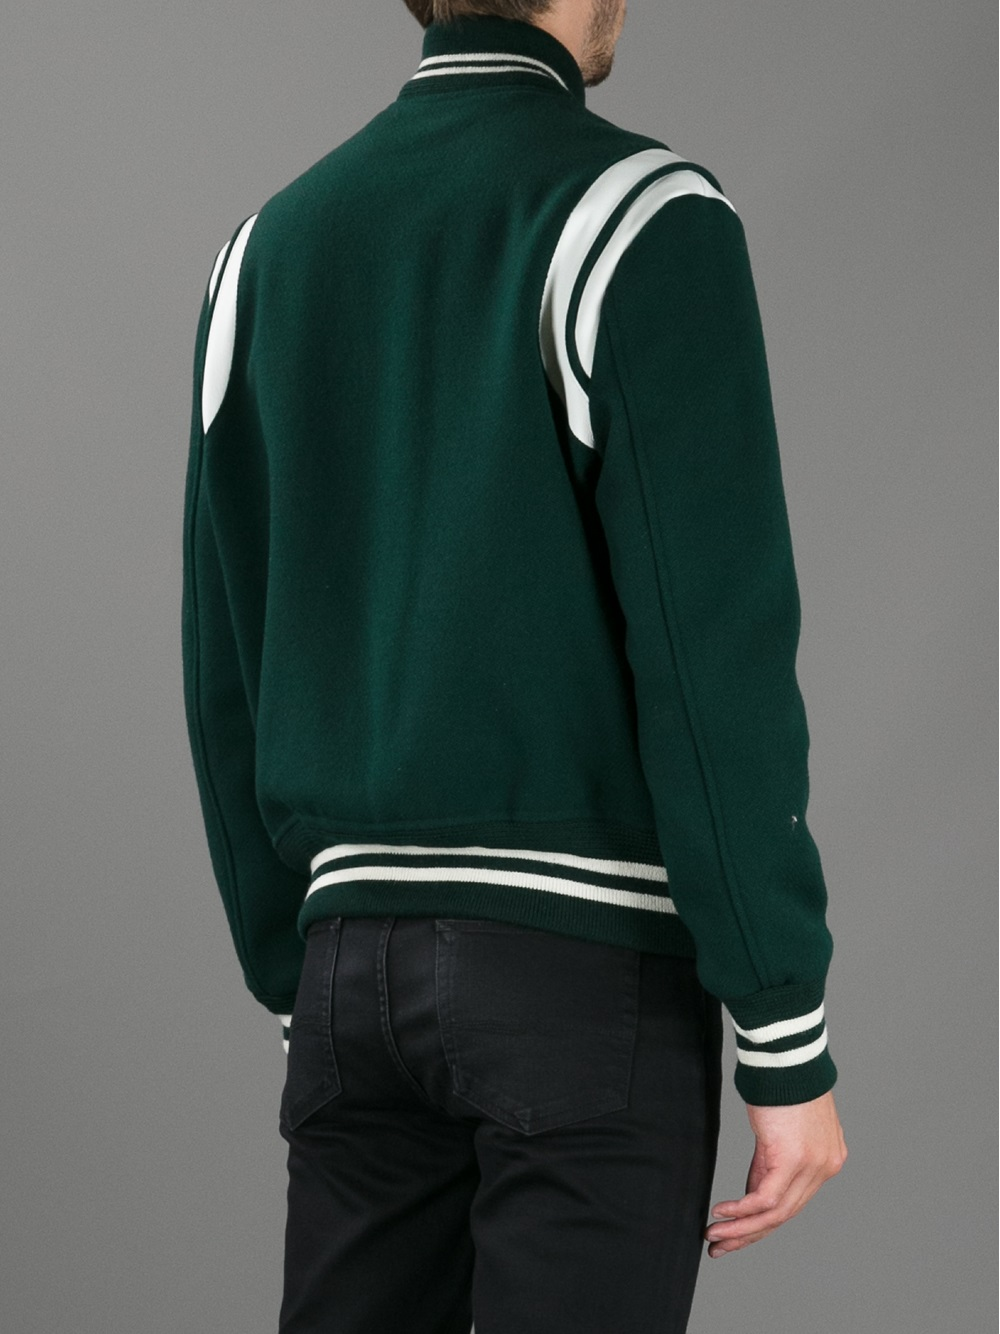 Lyst Saint Laurent Contrast Varsity Style Jacket In Green For Men